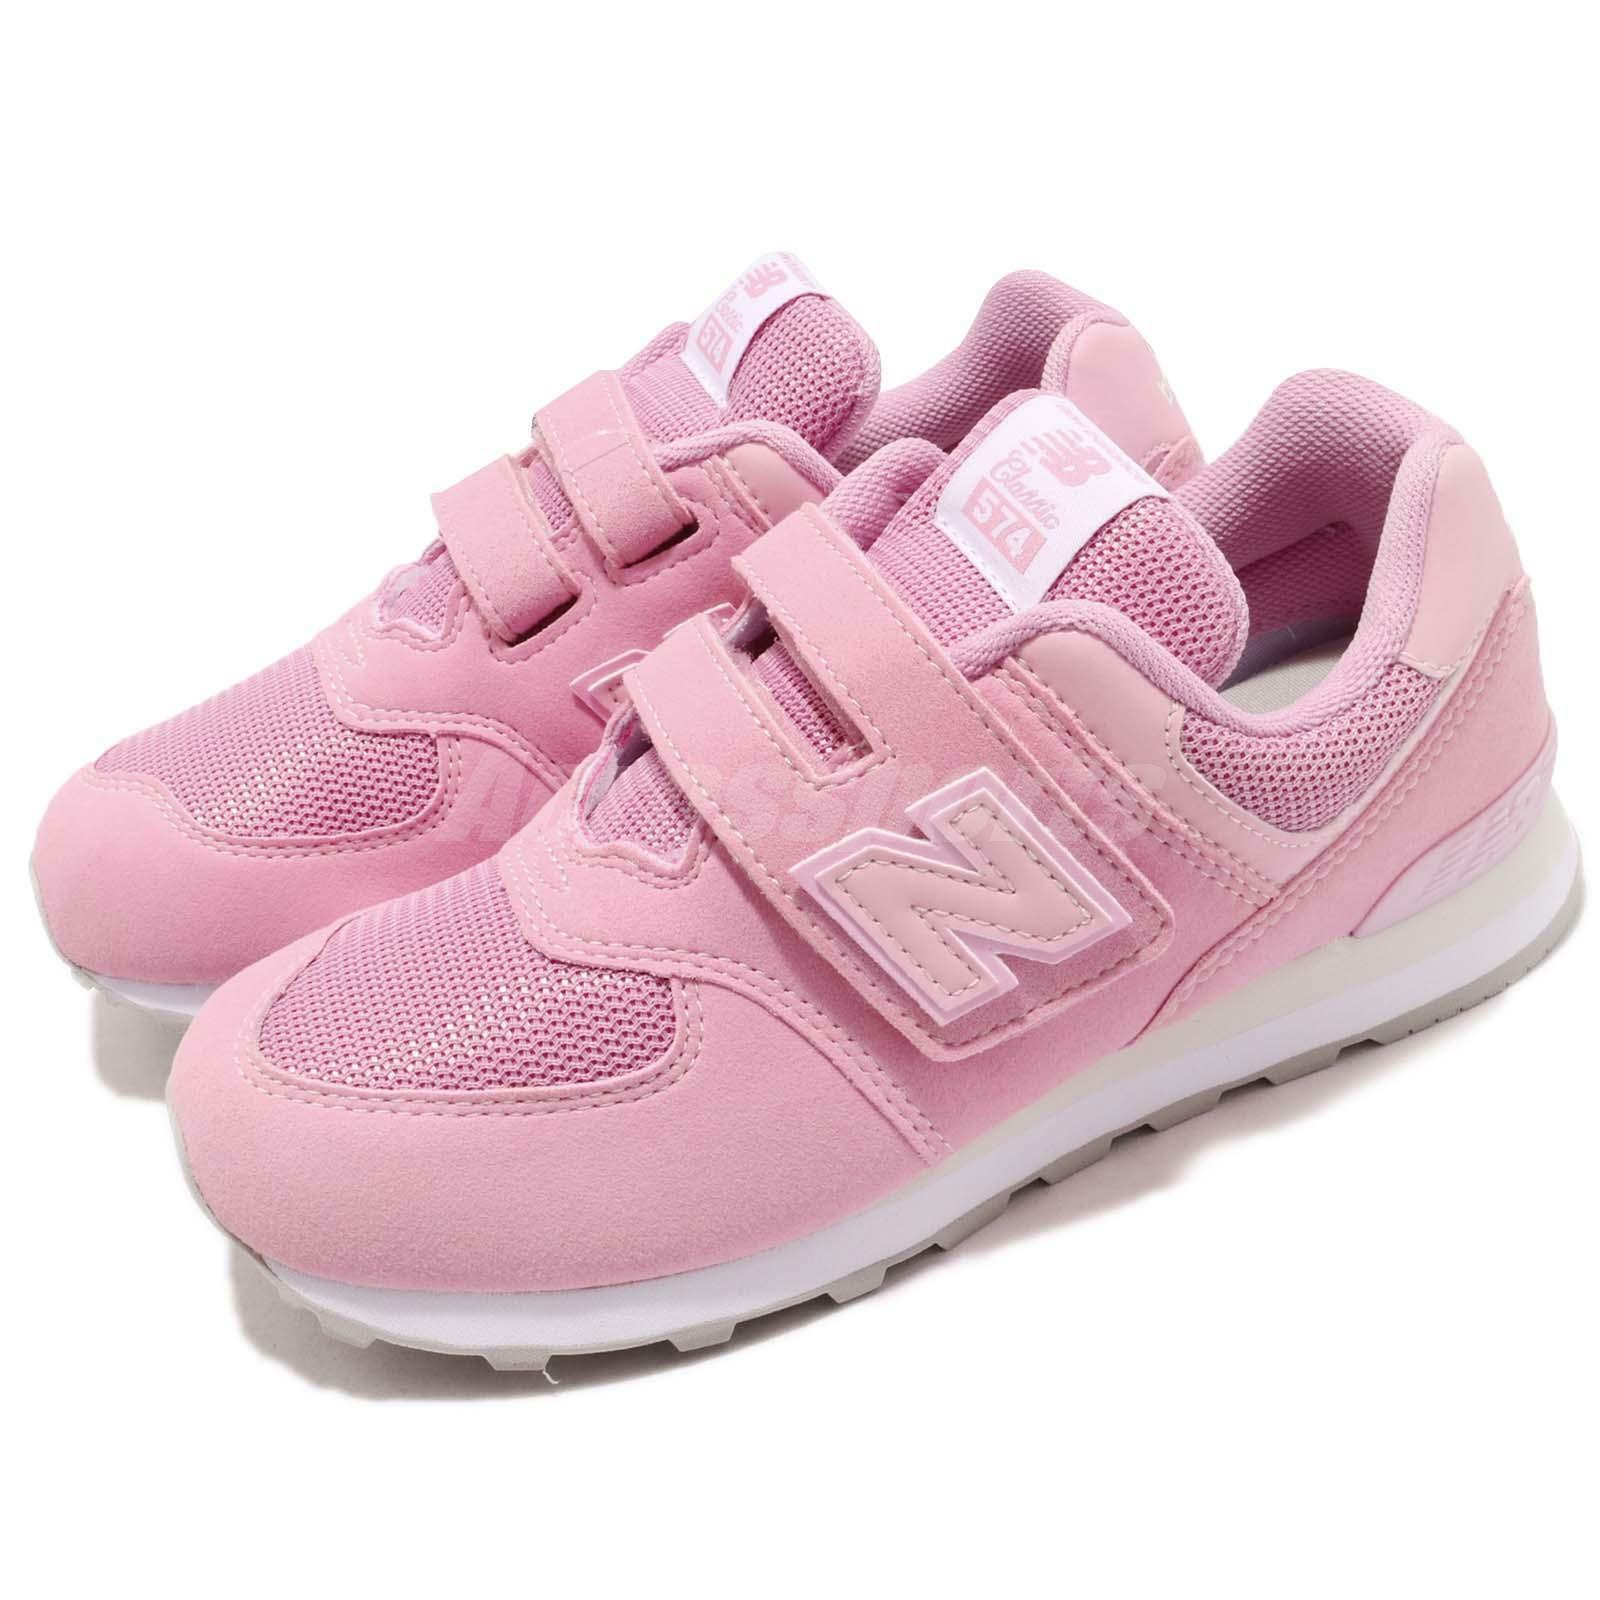 new styles 49cd5 fbf1e New Balance YV574TD W Wide Pink blanc Kid Youth Junior Chaussures Sneakers  YV574TDW